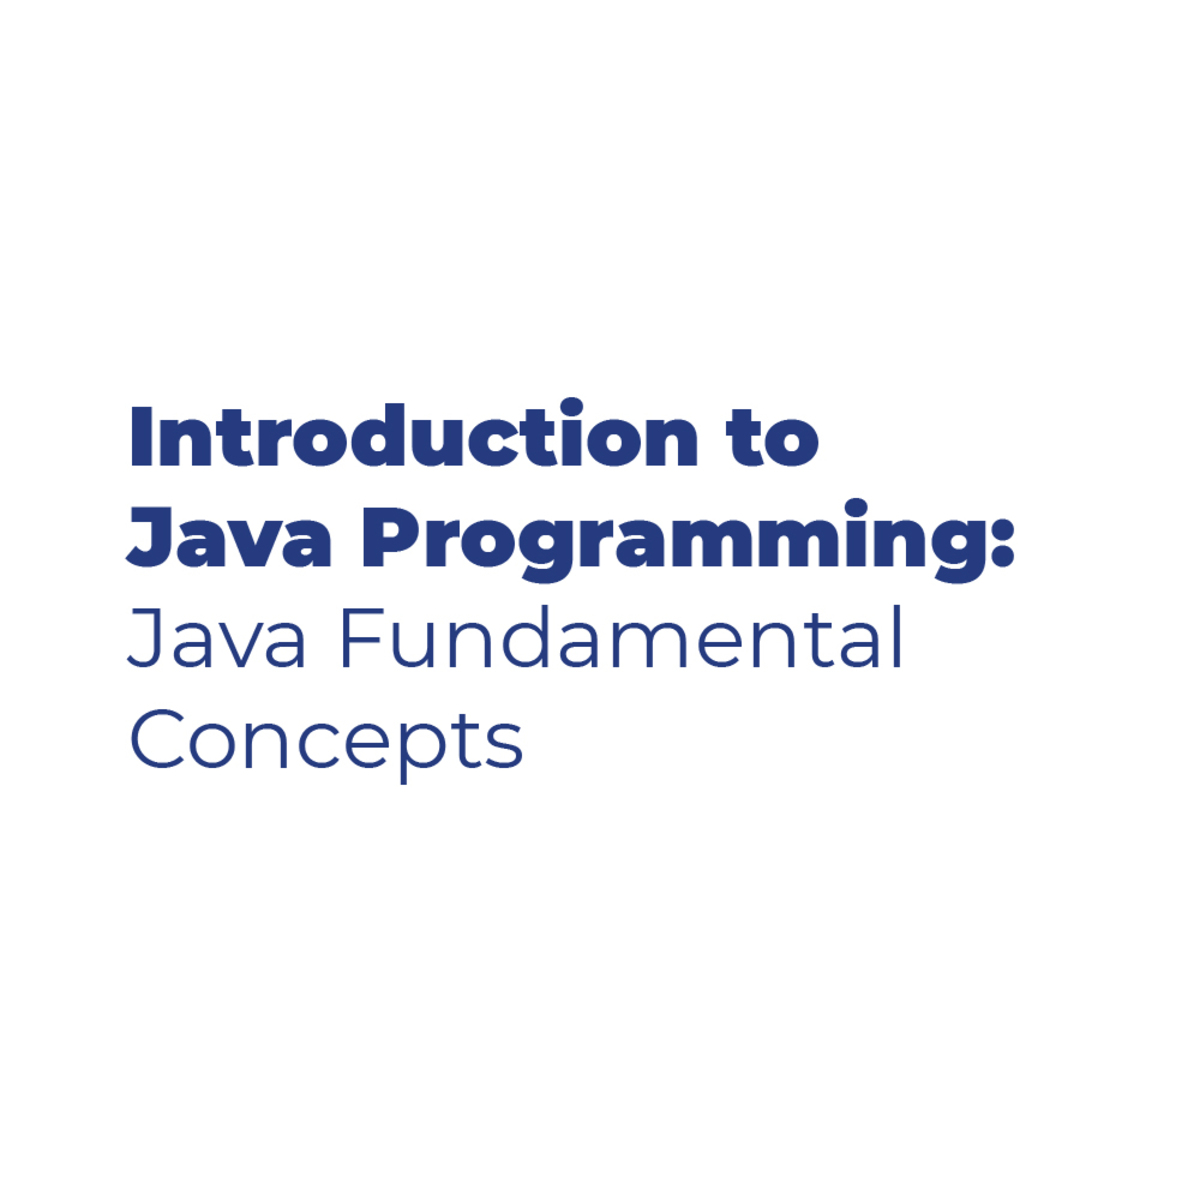 Introduction to Java Programming: Java Fundamental Concepts